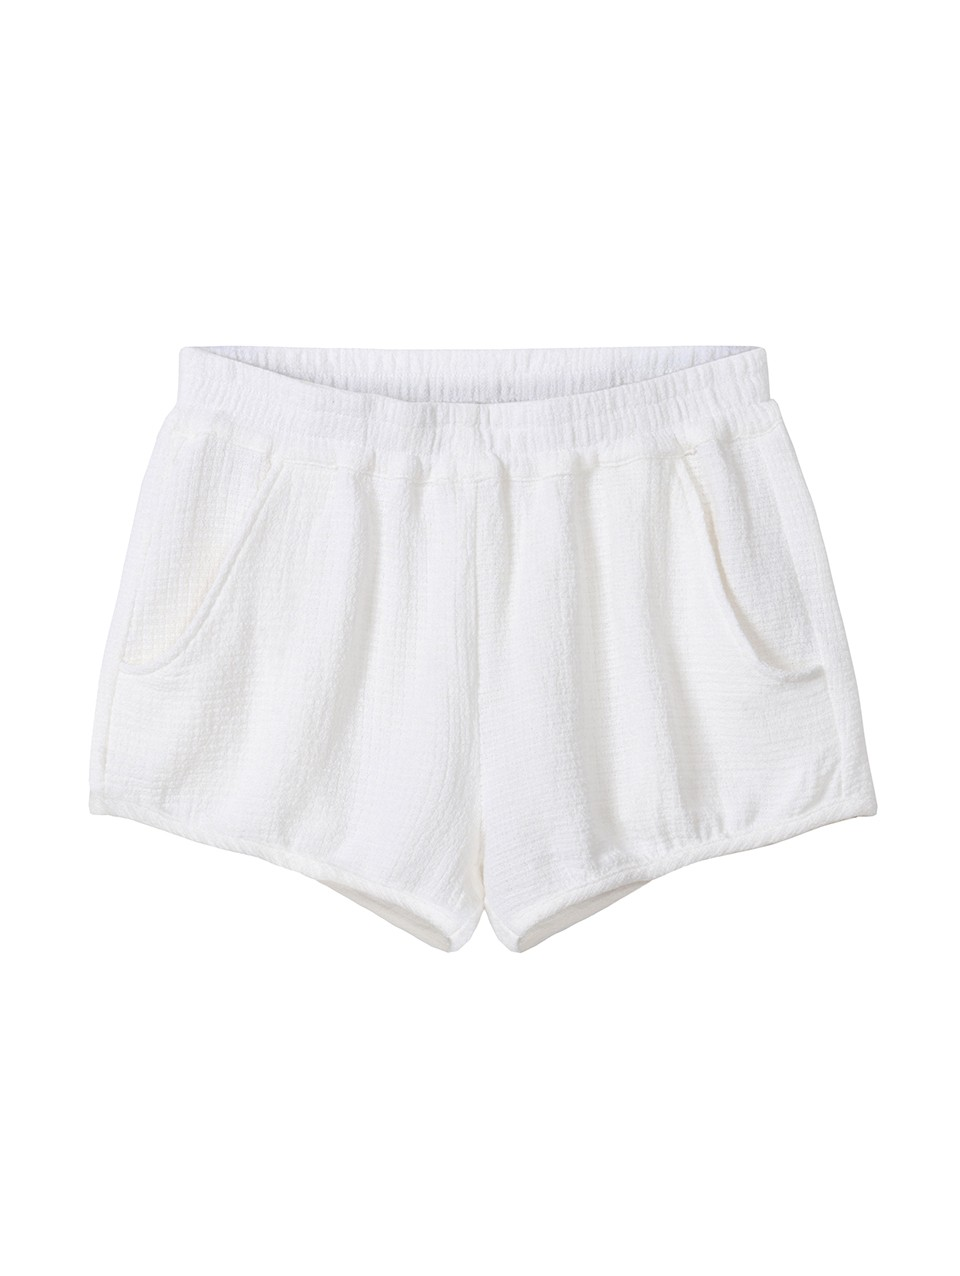 Klohe Textured Shorts